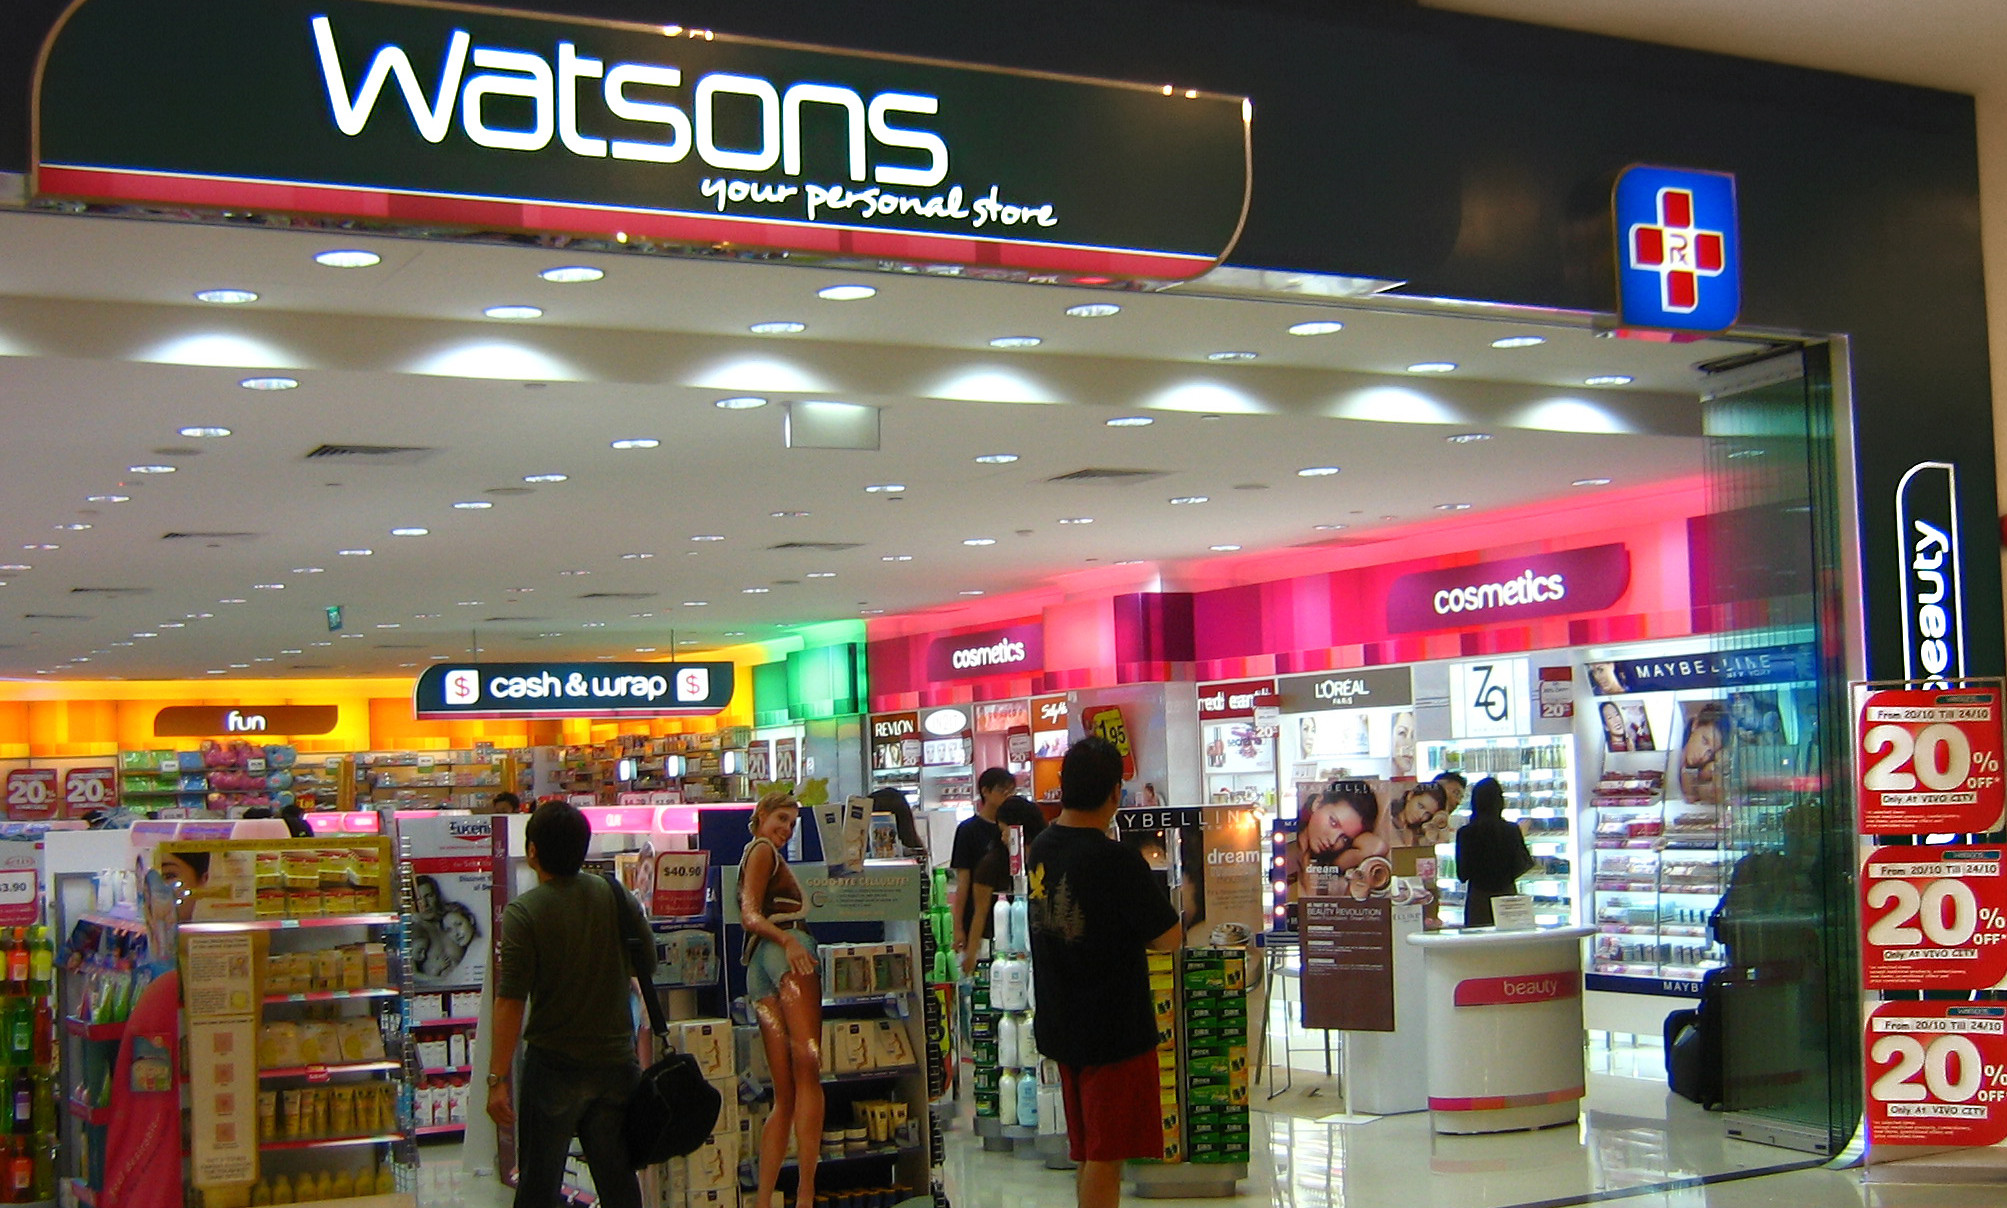 Watsons looking to make e-commerce push - Marketing Interactive